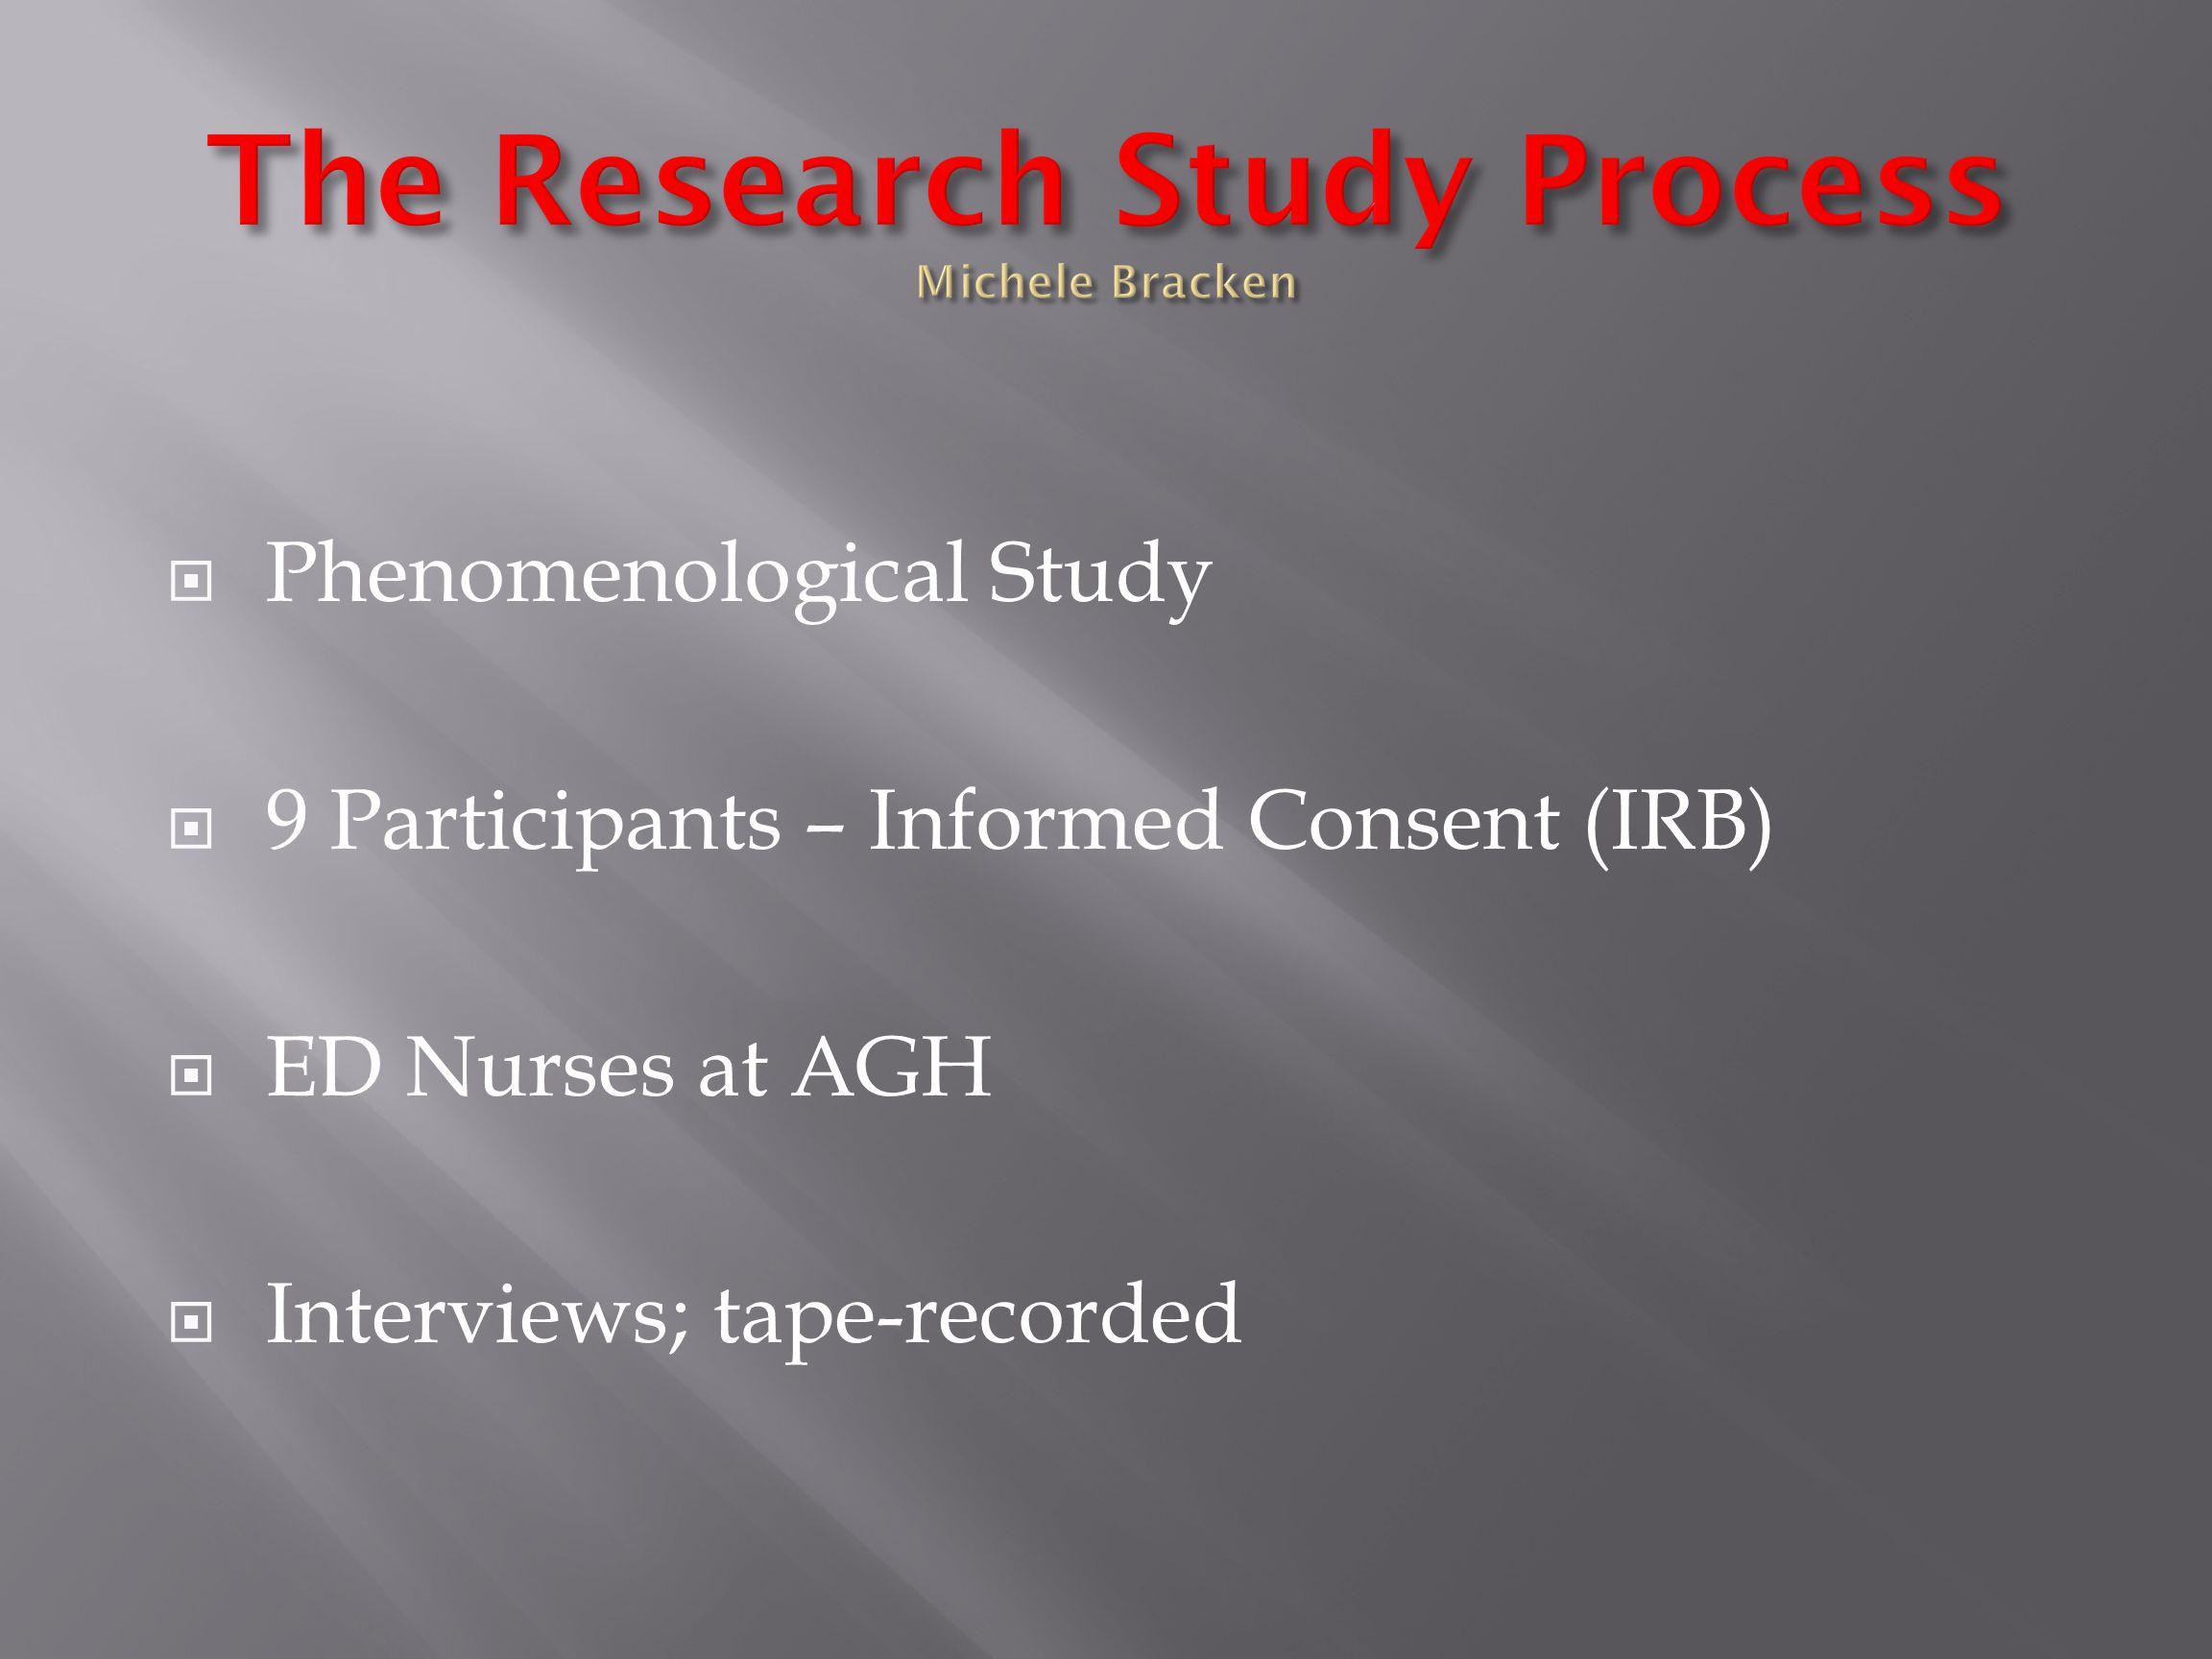  Phenomenological Study  9 Participants – Informed Consent (IRB)  ED Nurses at AGH  Interviews; tape-recorded